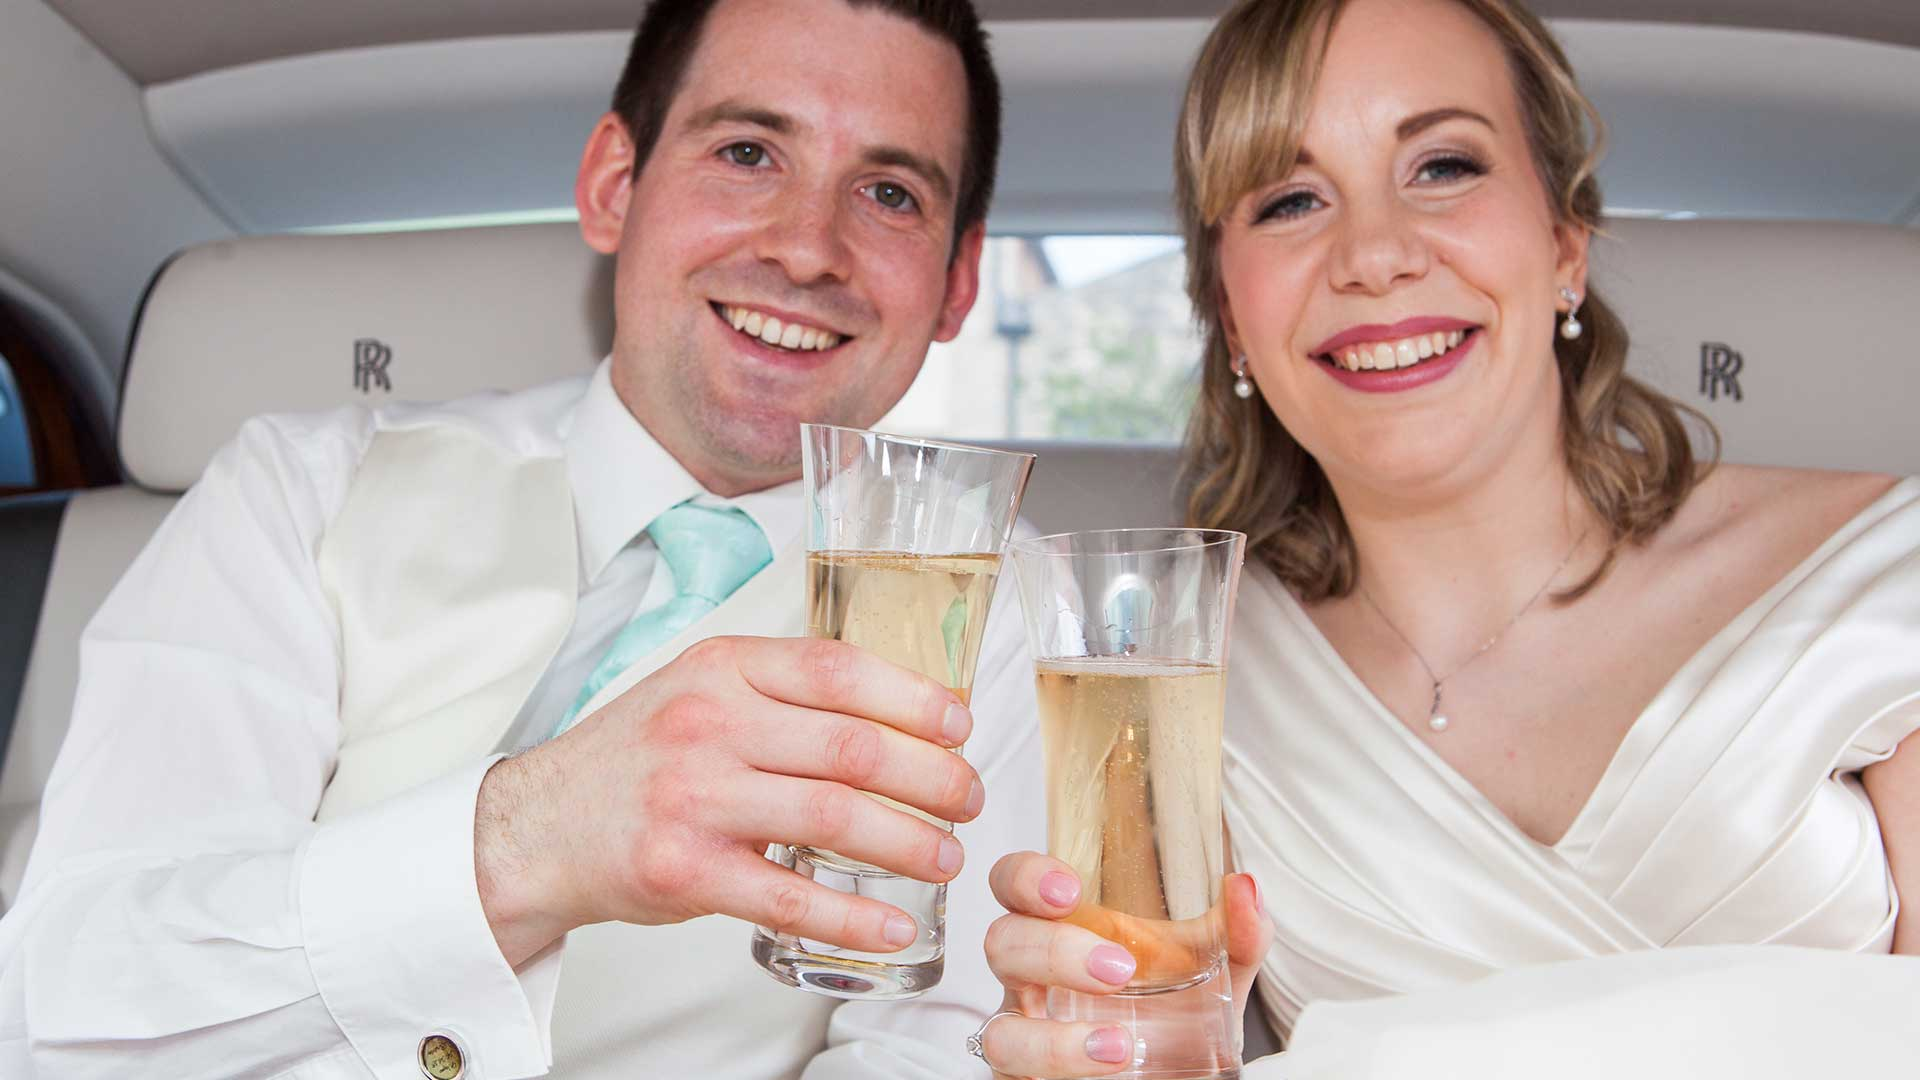 Newly-wed couple Mr and Mrs Bracher enjoying a celebratory glass of Champagne in the Rolls-Royce Phantom